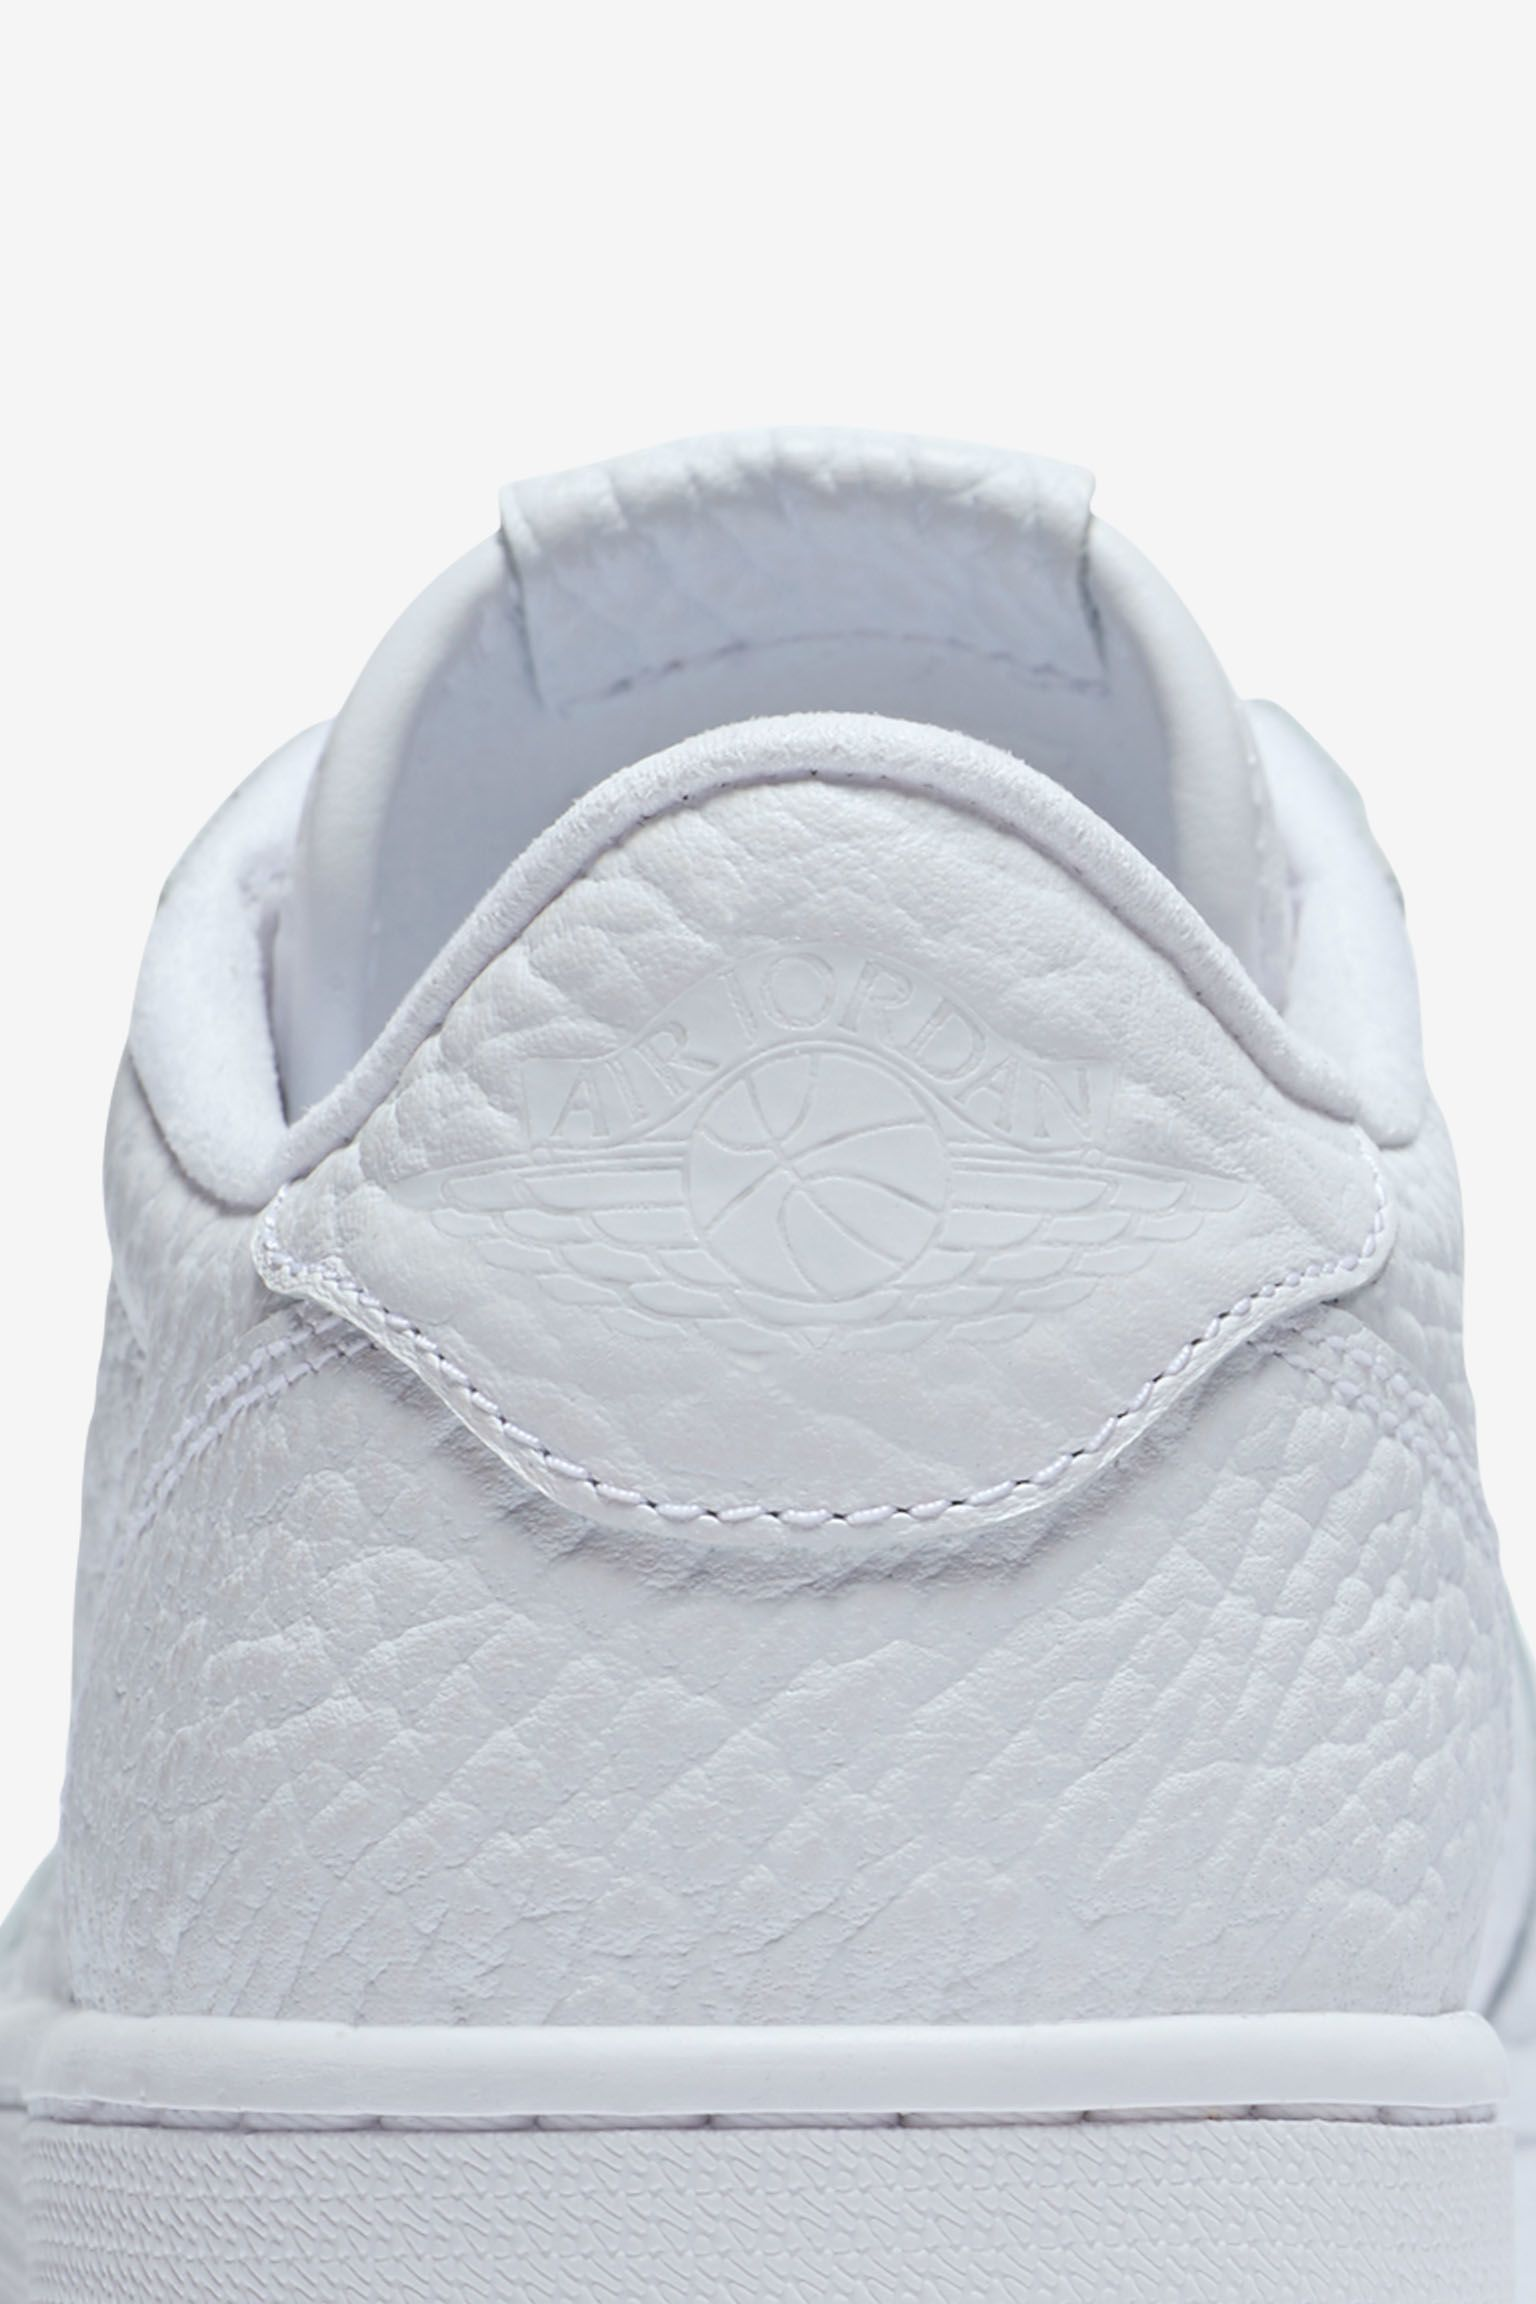 Air Jordan 1 Retro Low NS 'Triple White' Release Date